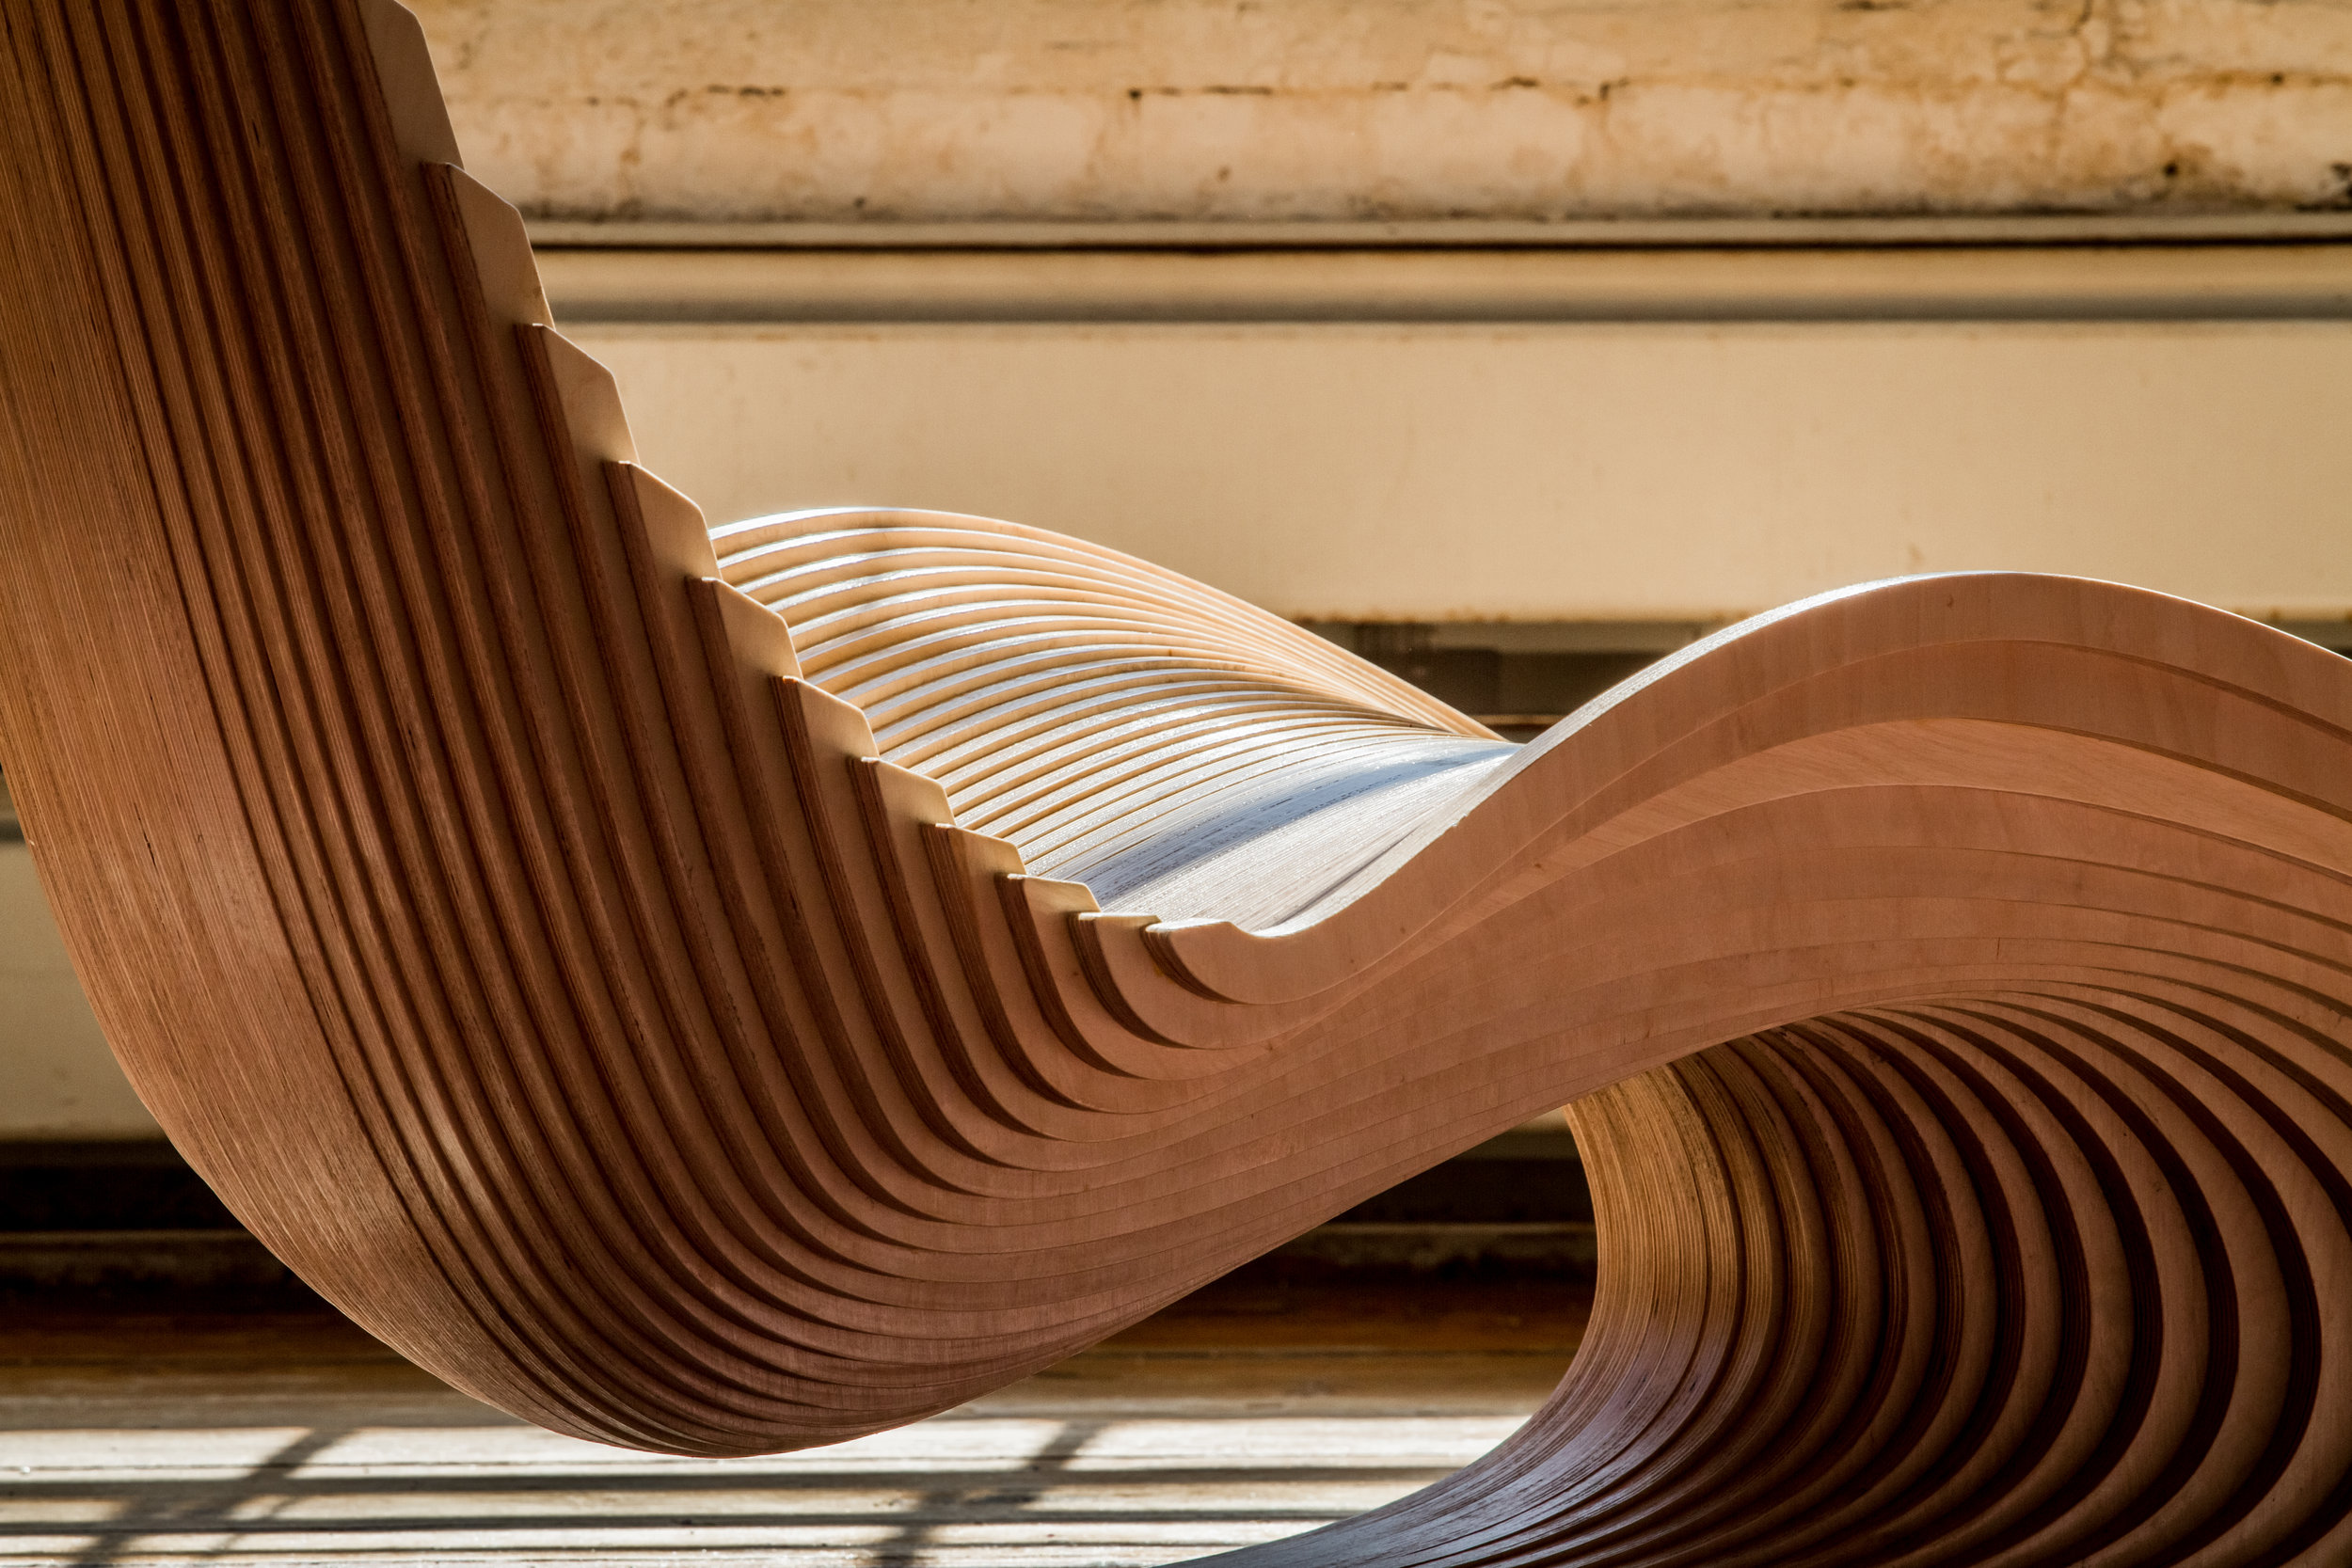 Ahmed El Husseiny/AE Superlab.  The Diwani Chair , 2015 (detail). Atlantic birch plywood.42 x 31 x 53 in.Courtesy of Ahmed El Husseiny/AE Superlab.2016.AES.01. Photo:  Ahmed ElHusseiny/AE Superlab  METHOD: CNC router, hand block sander